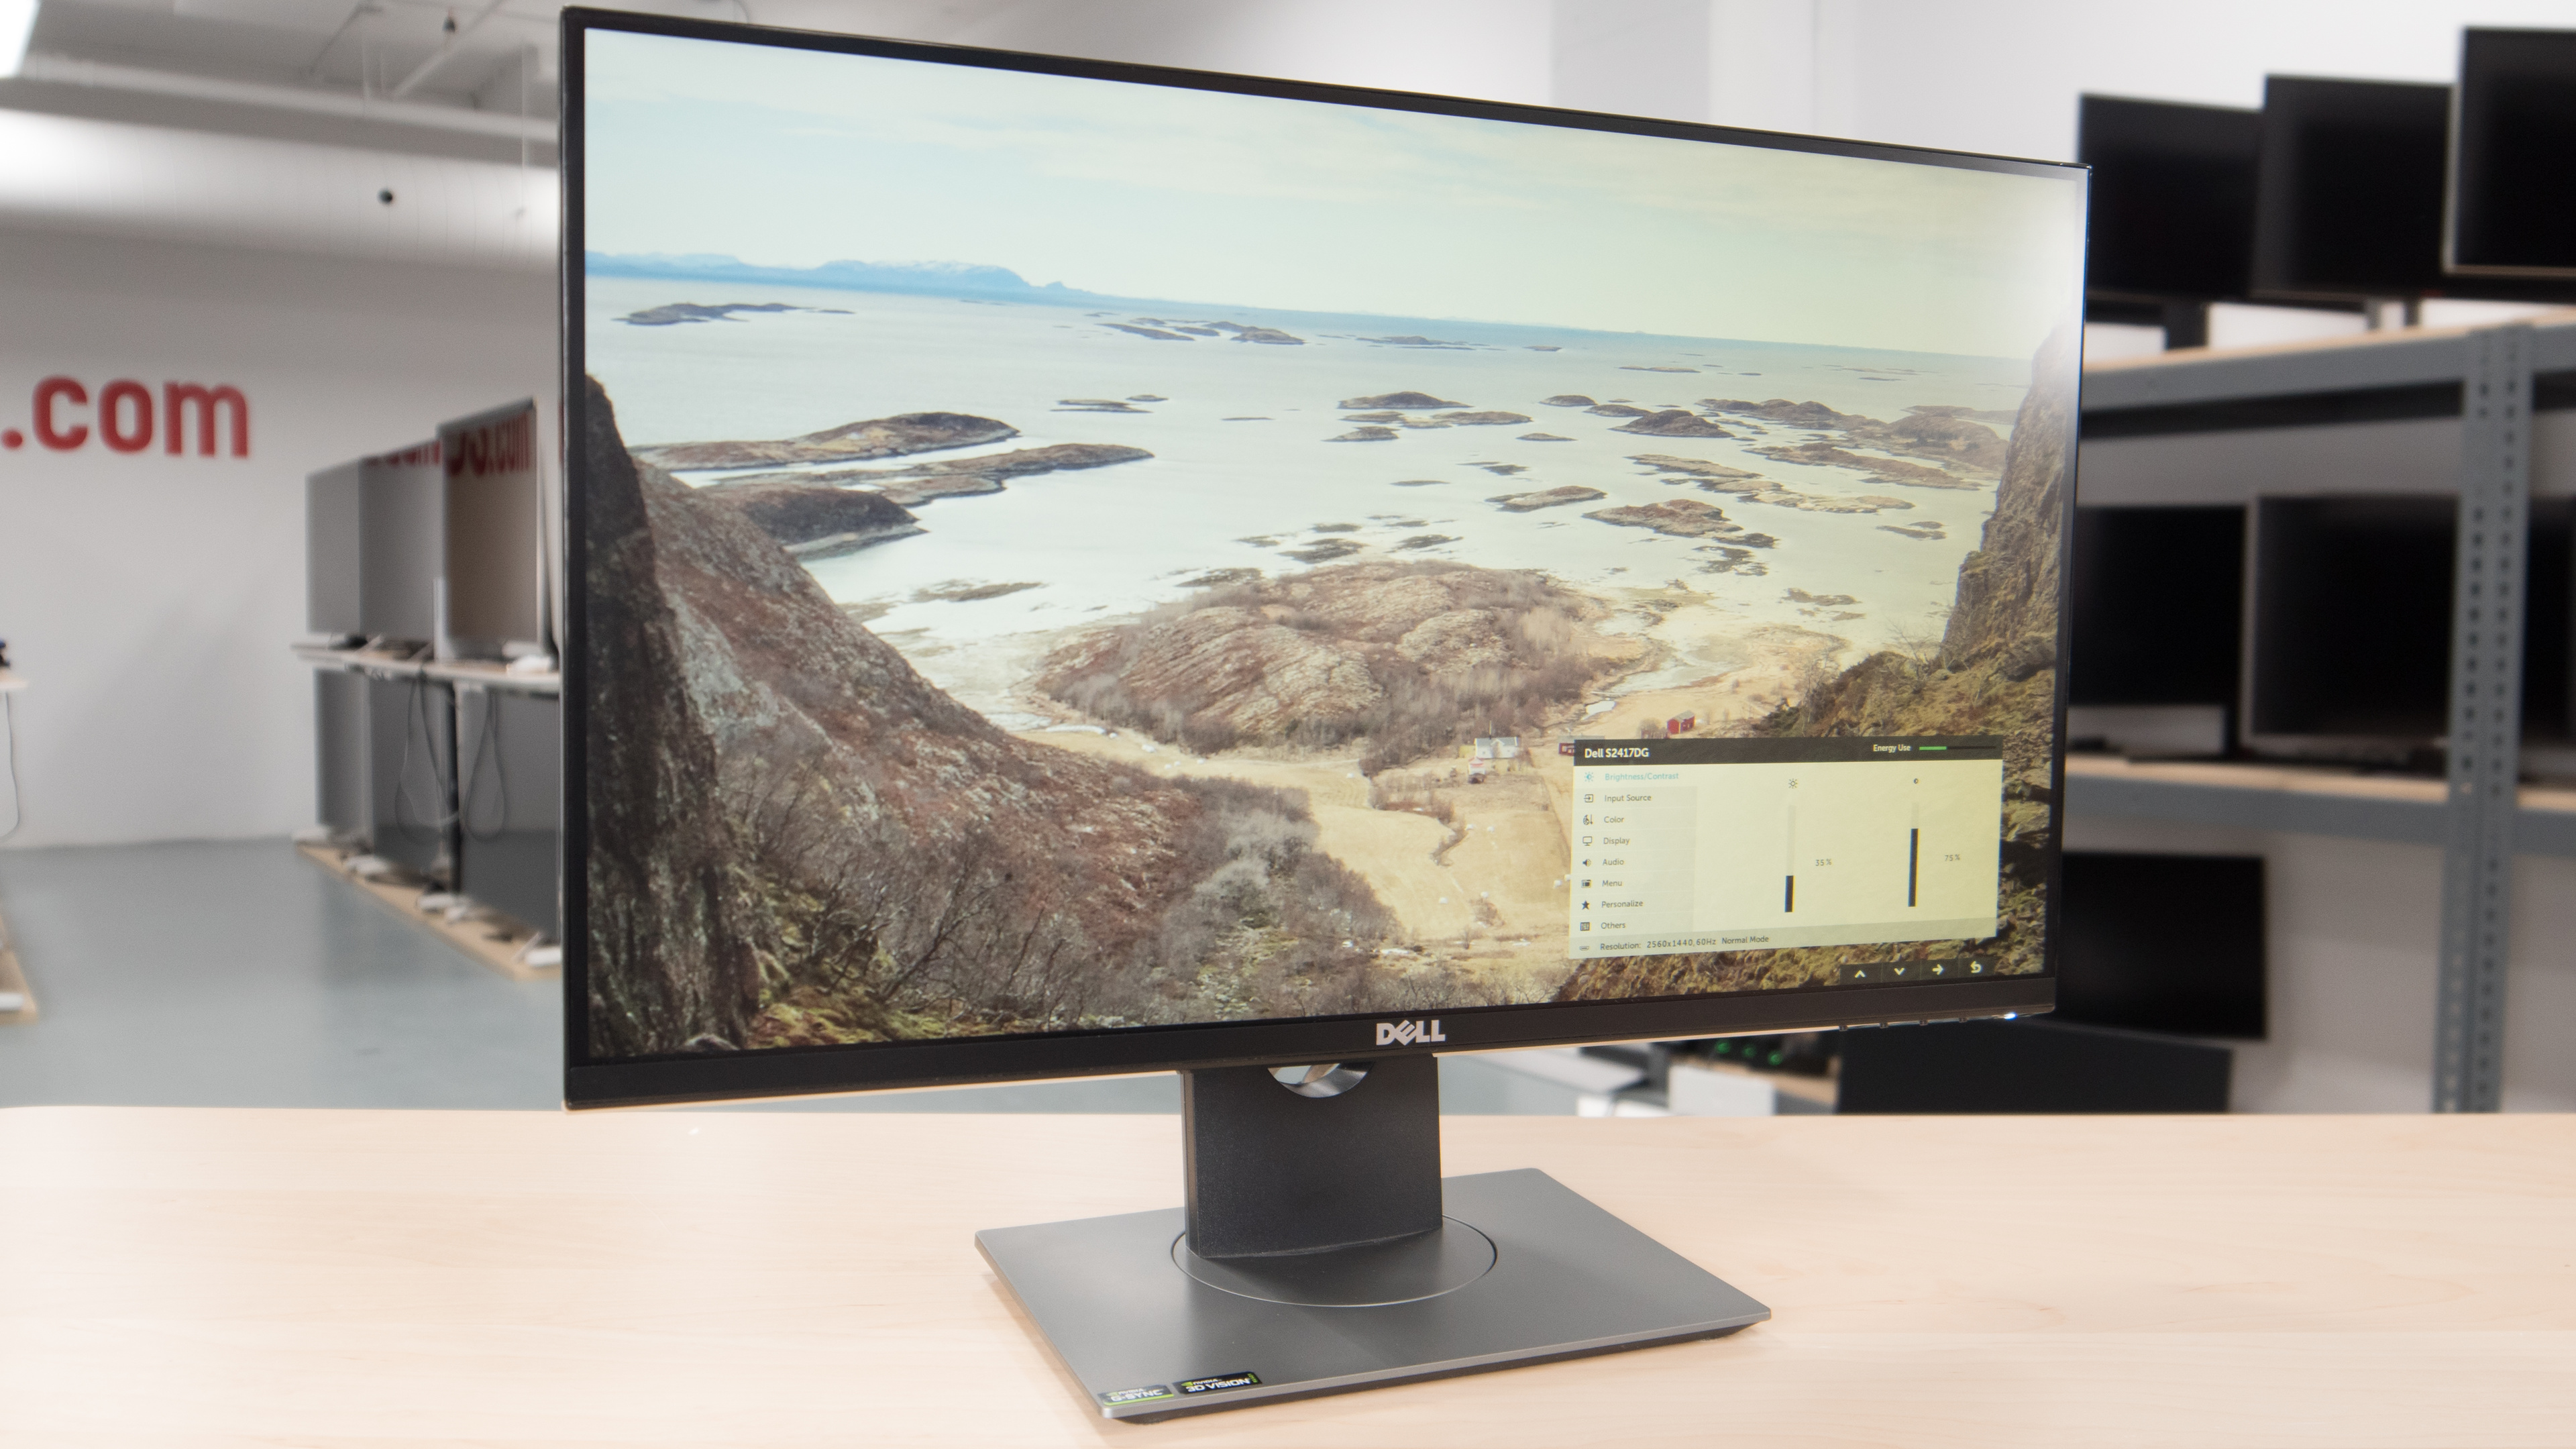 Dell S2417DG Review - RTINGS com